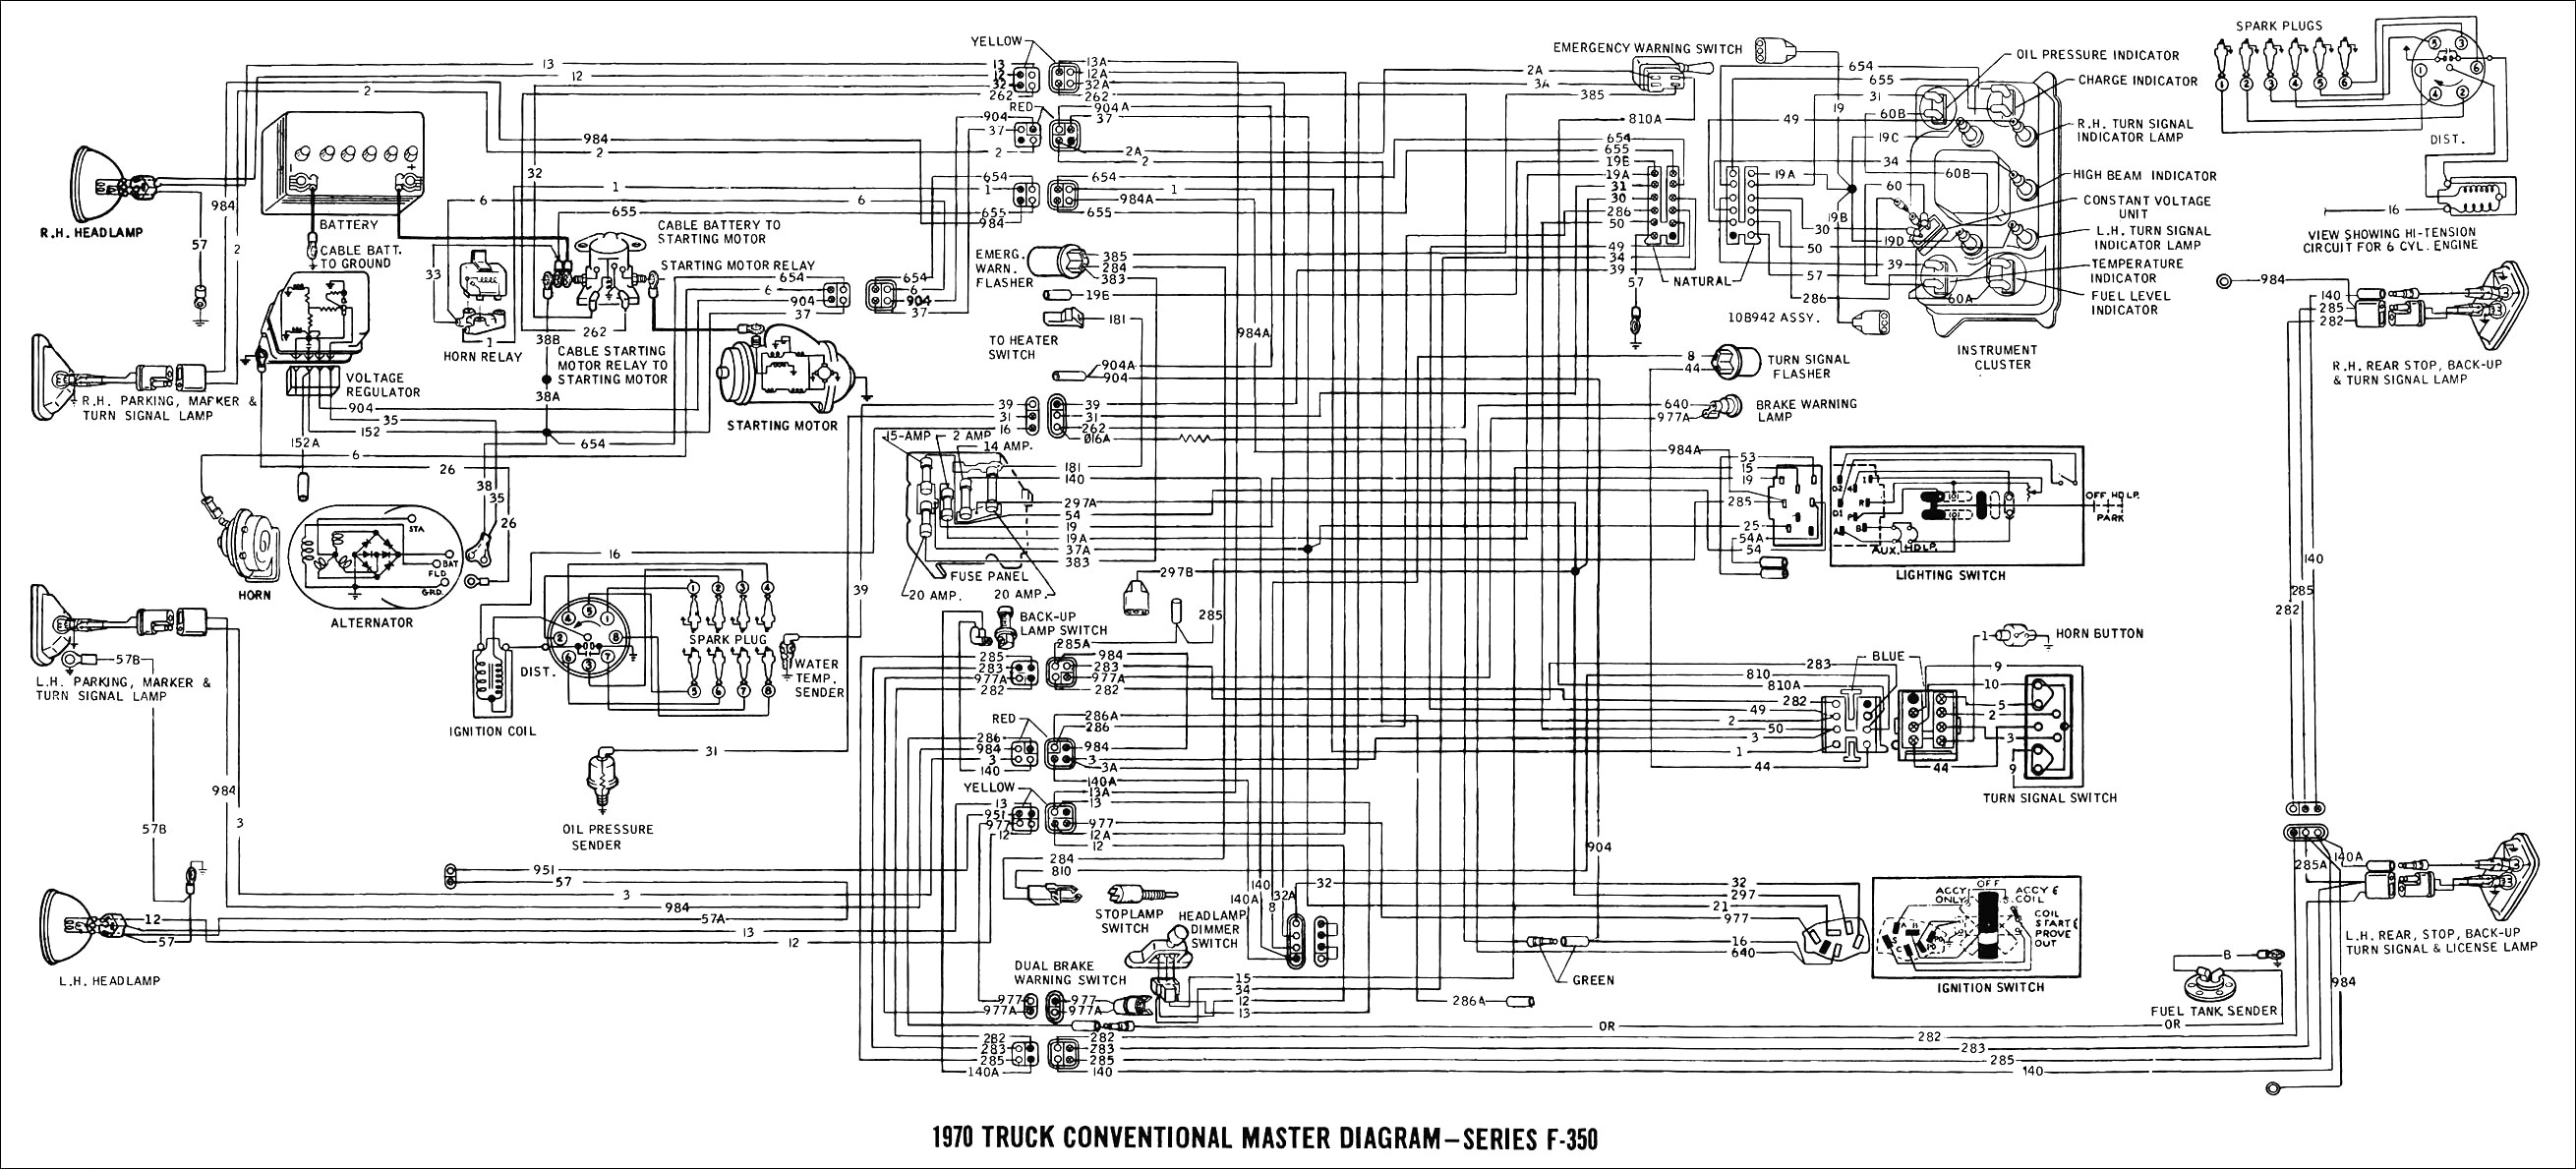 97 ford ranger engine diagram i need the wiring diagram